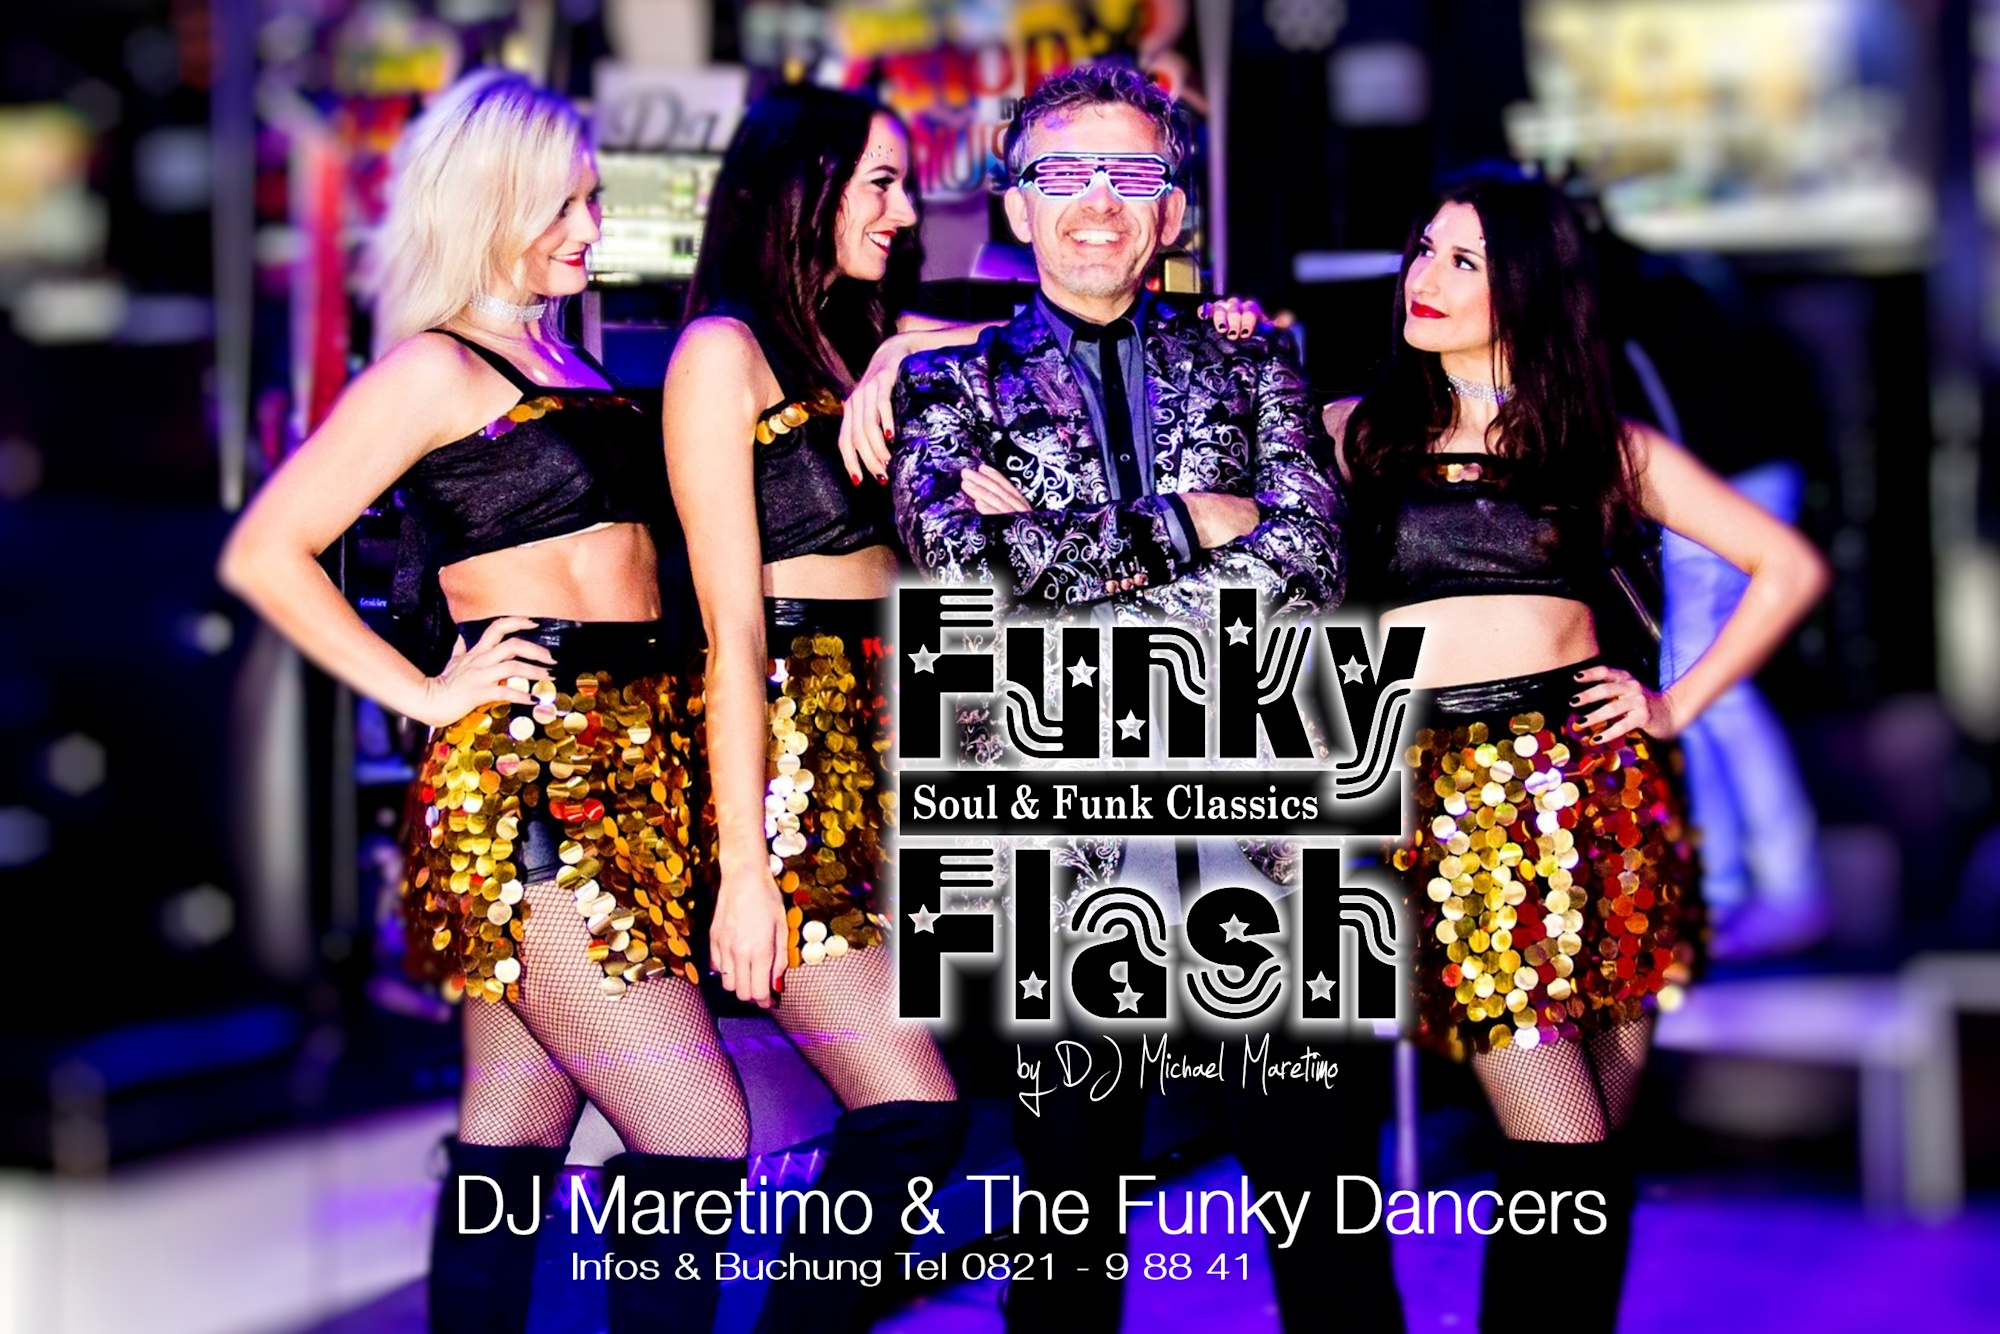 ,Funkyflash' DJ Maretimo & The Funky Dancers - Maretimo Records